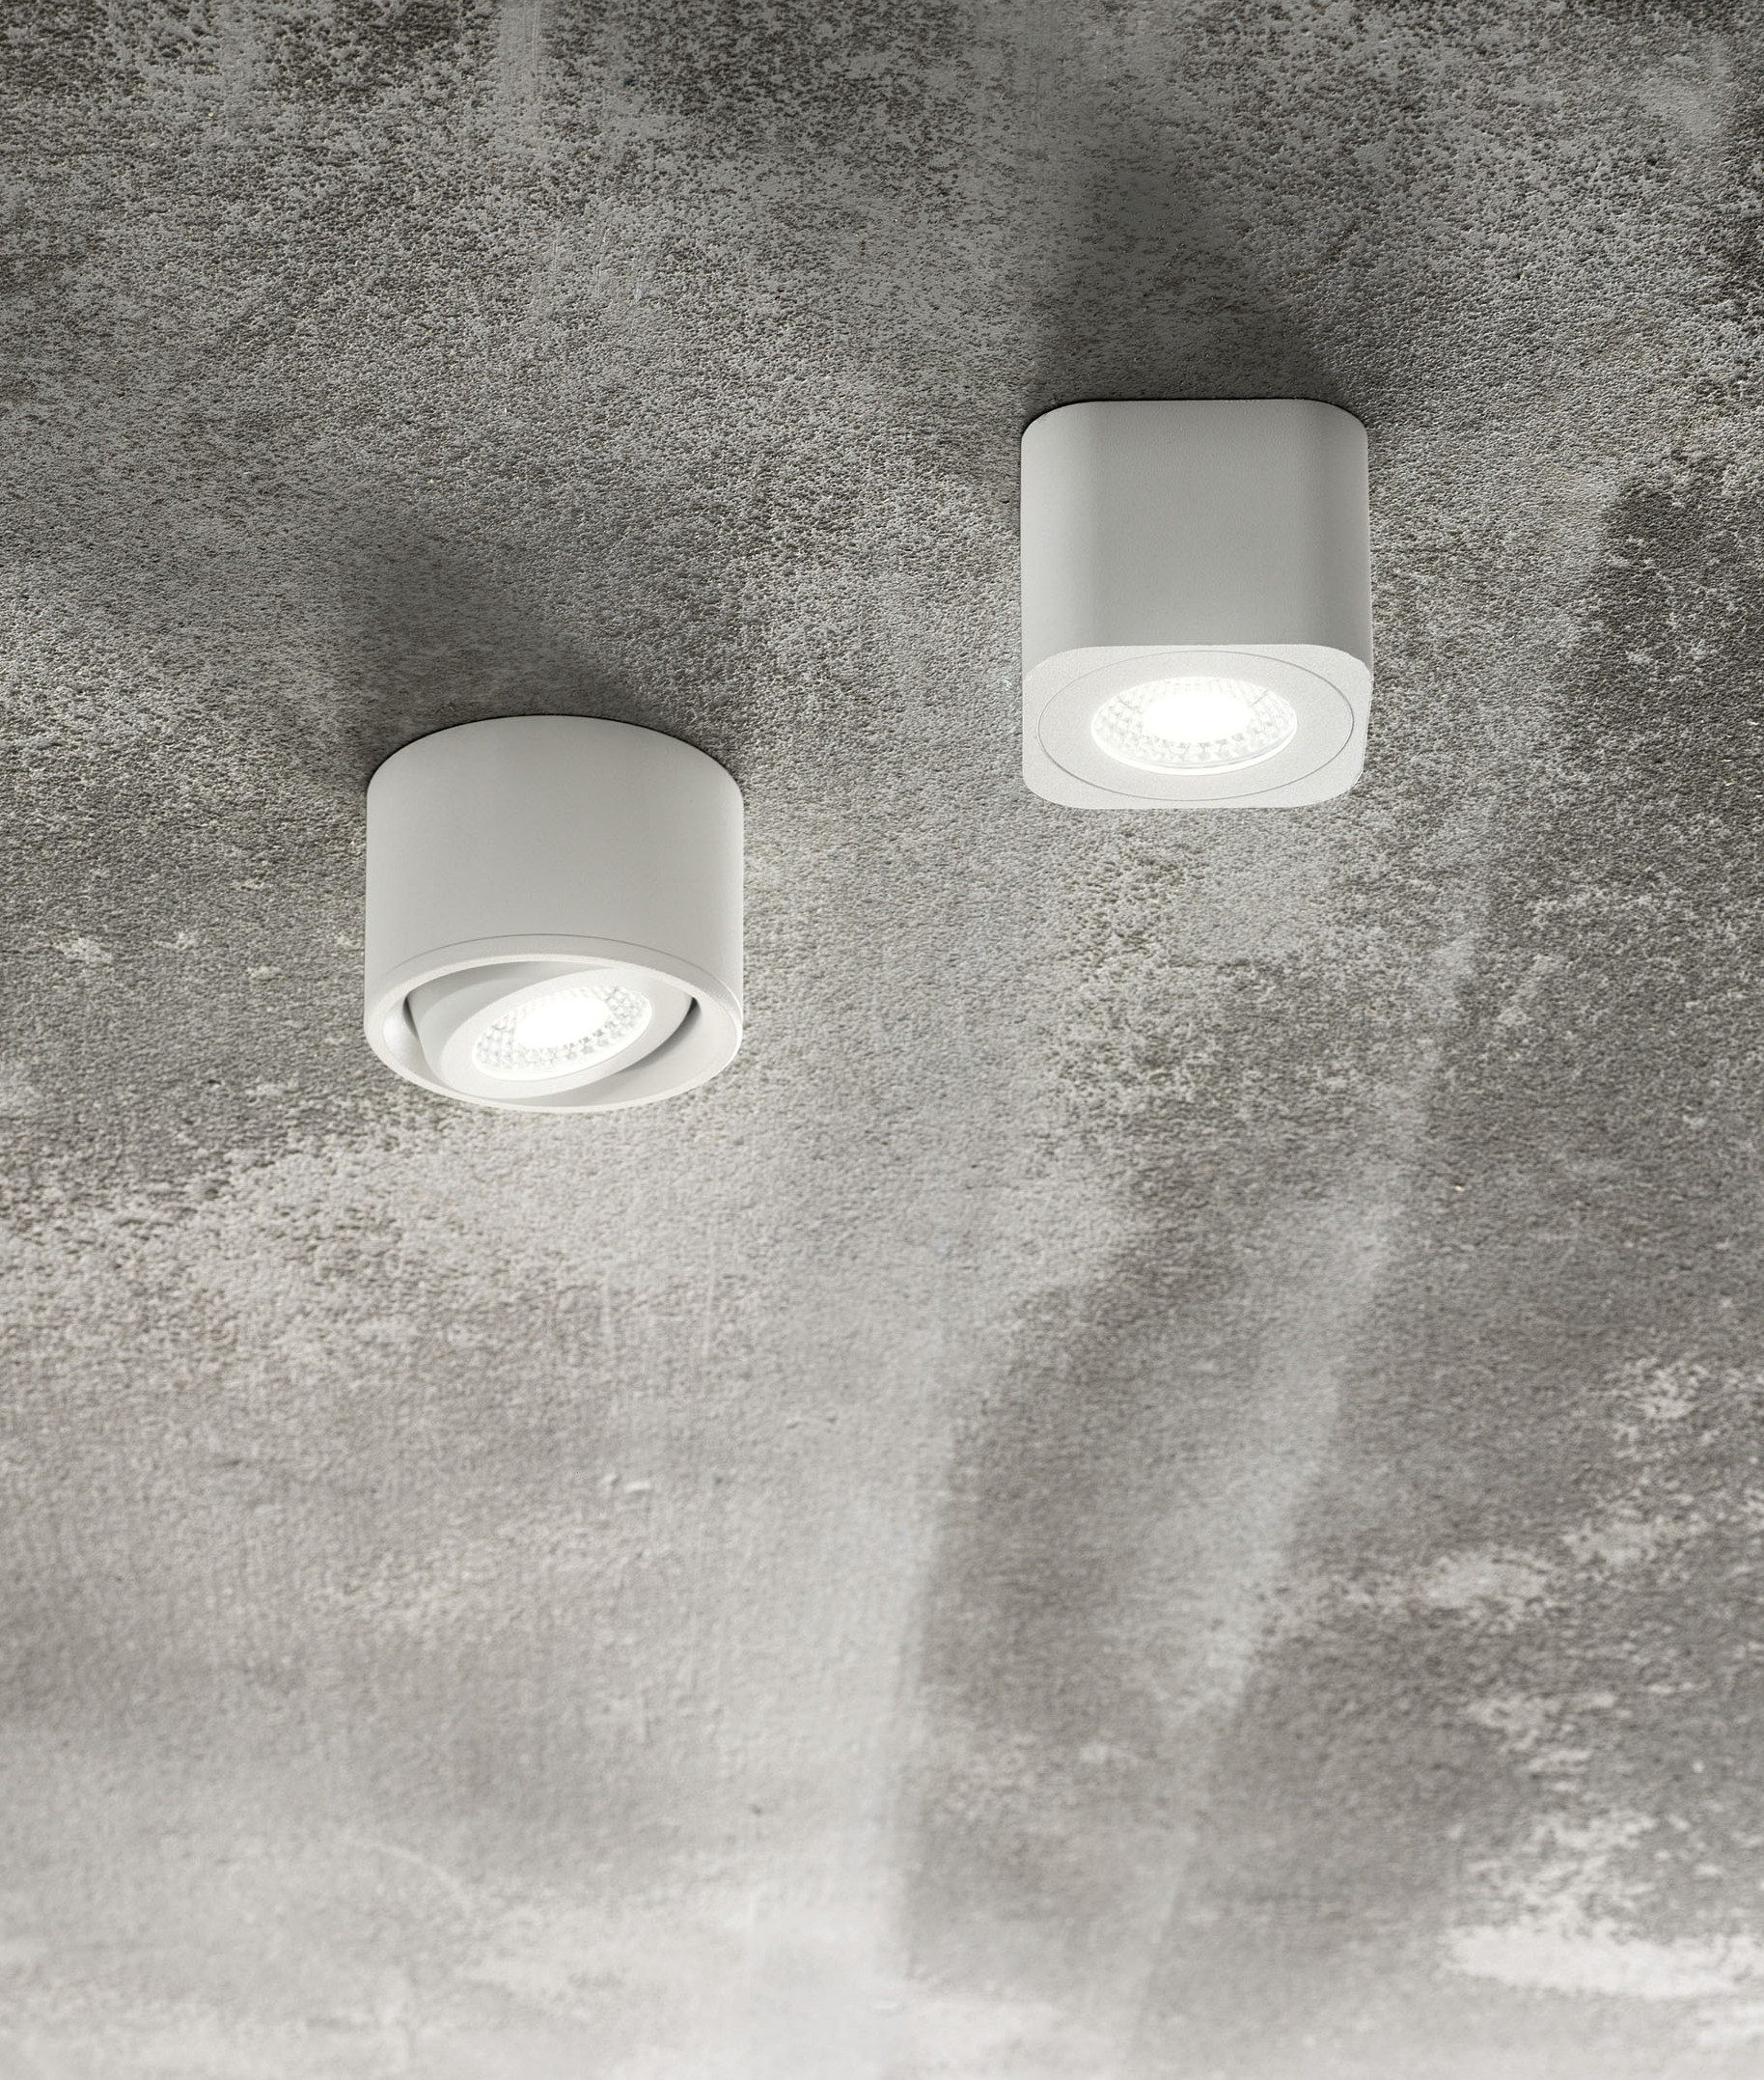 White Surface Mounted Downlights Fixed Or Adjustable